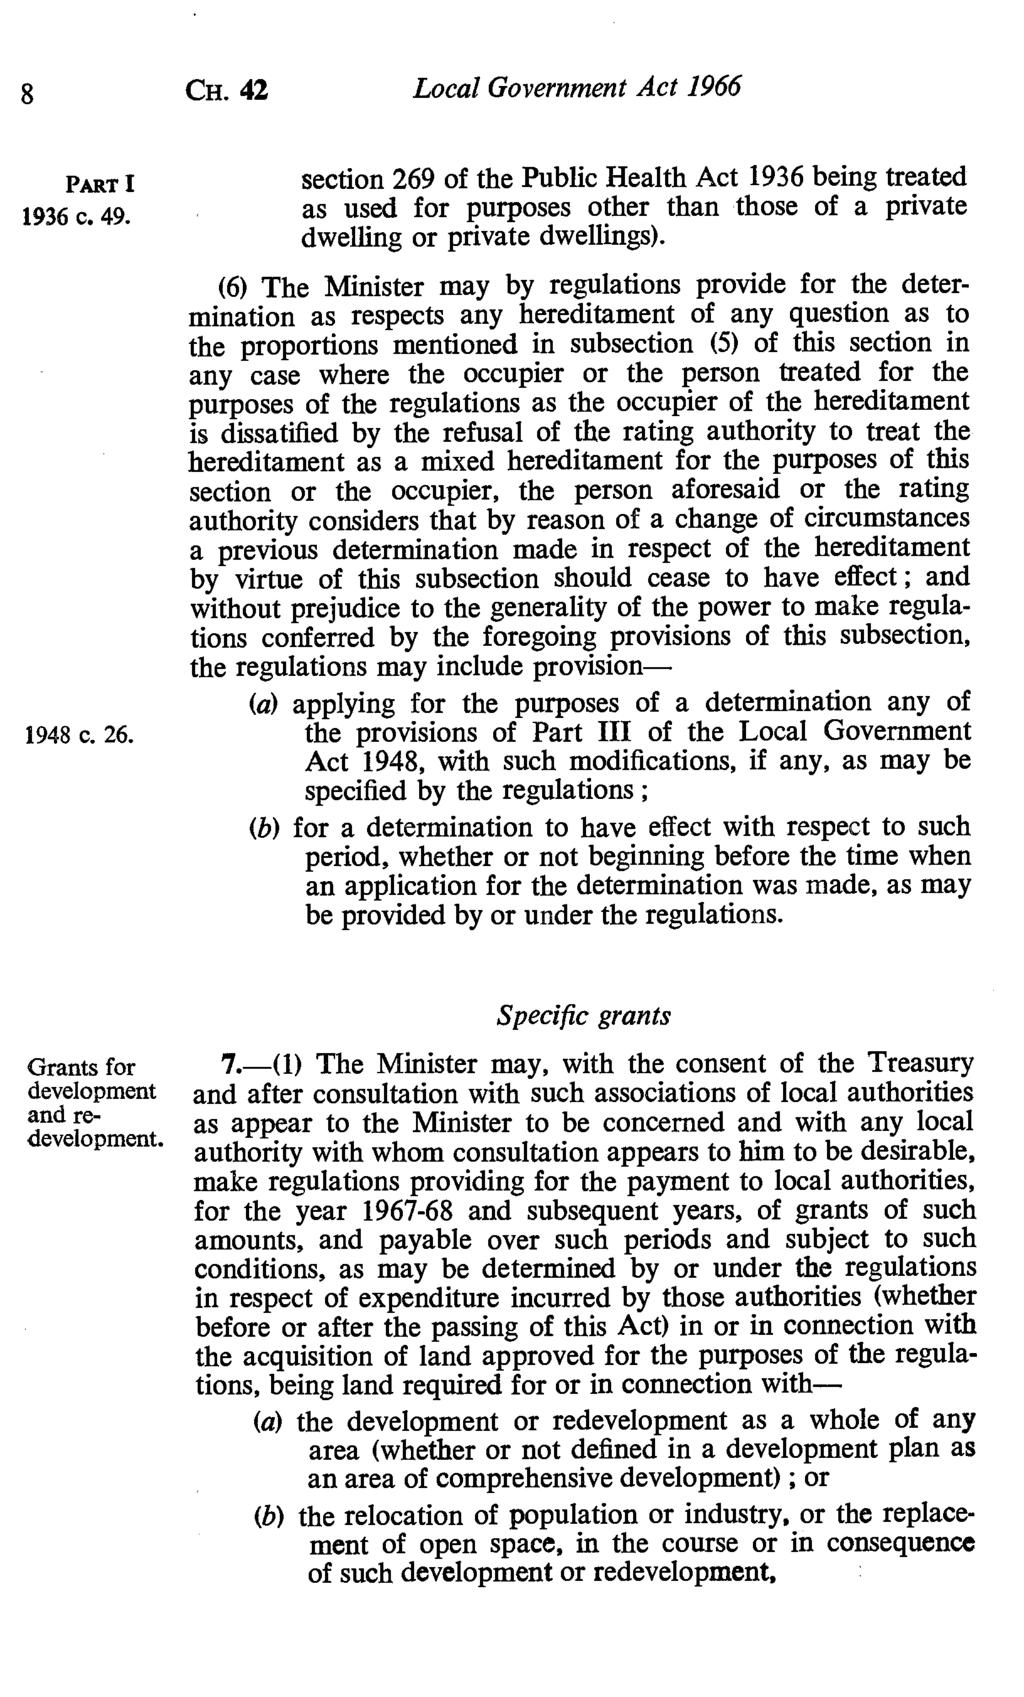 8 CH. 42 Local Government Act 1966 section 269 of the Public Health Act 1936 being treated 1936 c. 49. as used for purposes other than those of a private dwelling or private dwellings).